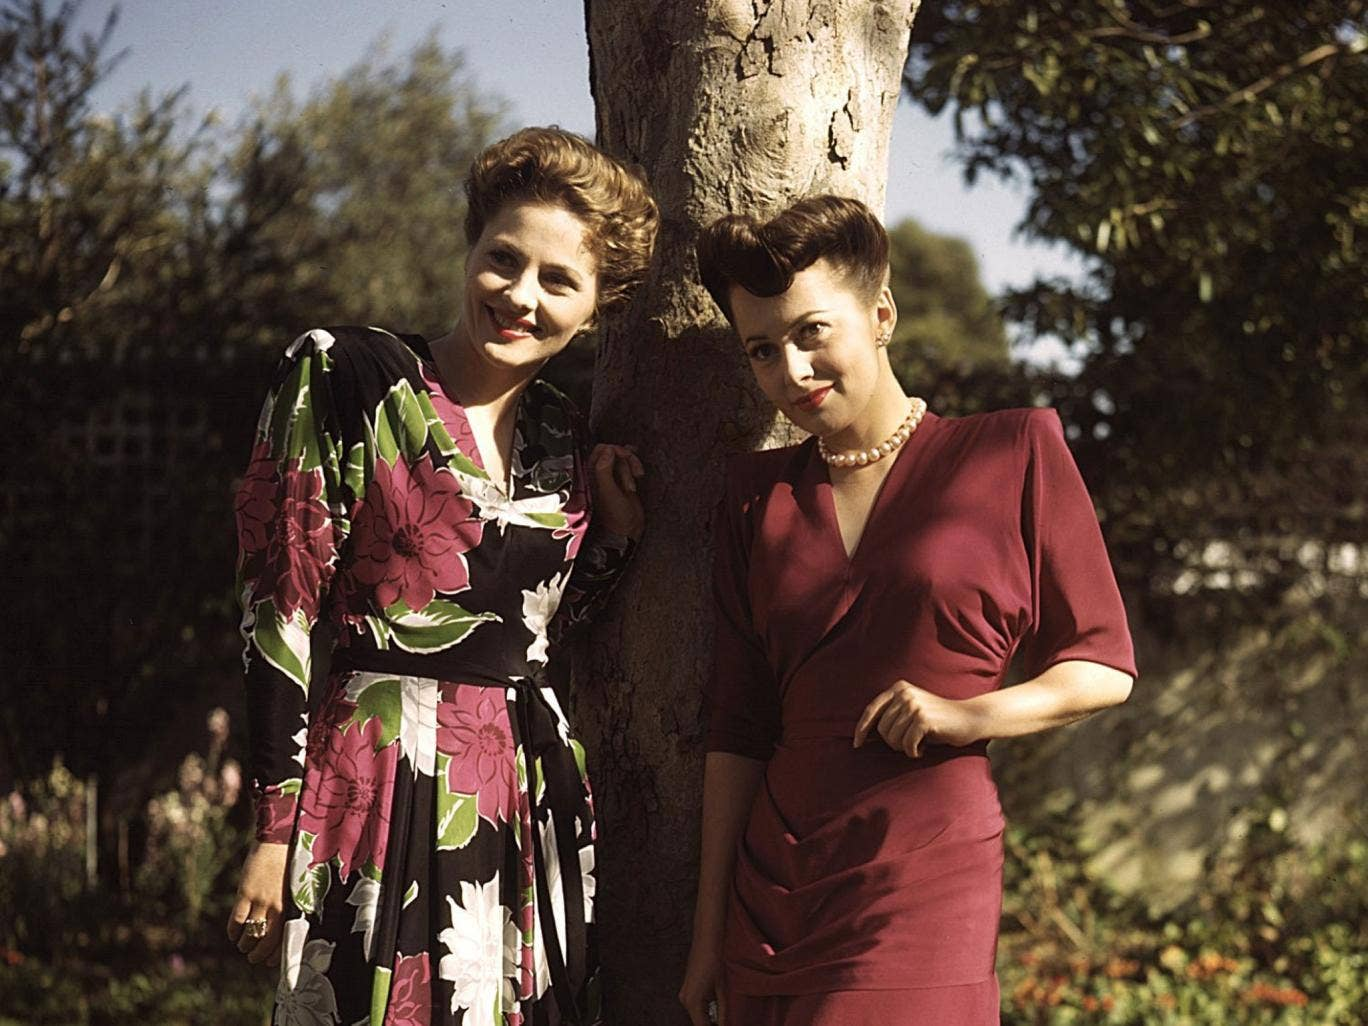 Joan Fontaine at home with her sister Olivia De Havilland, wearing the plain dress, in the 1940s